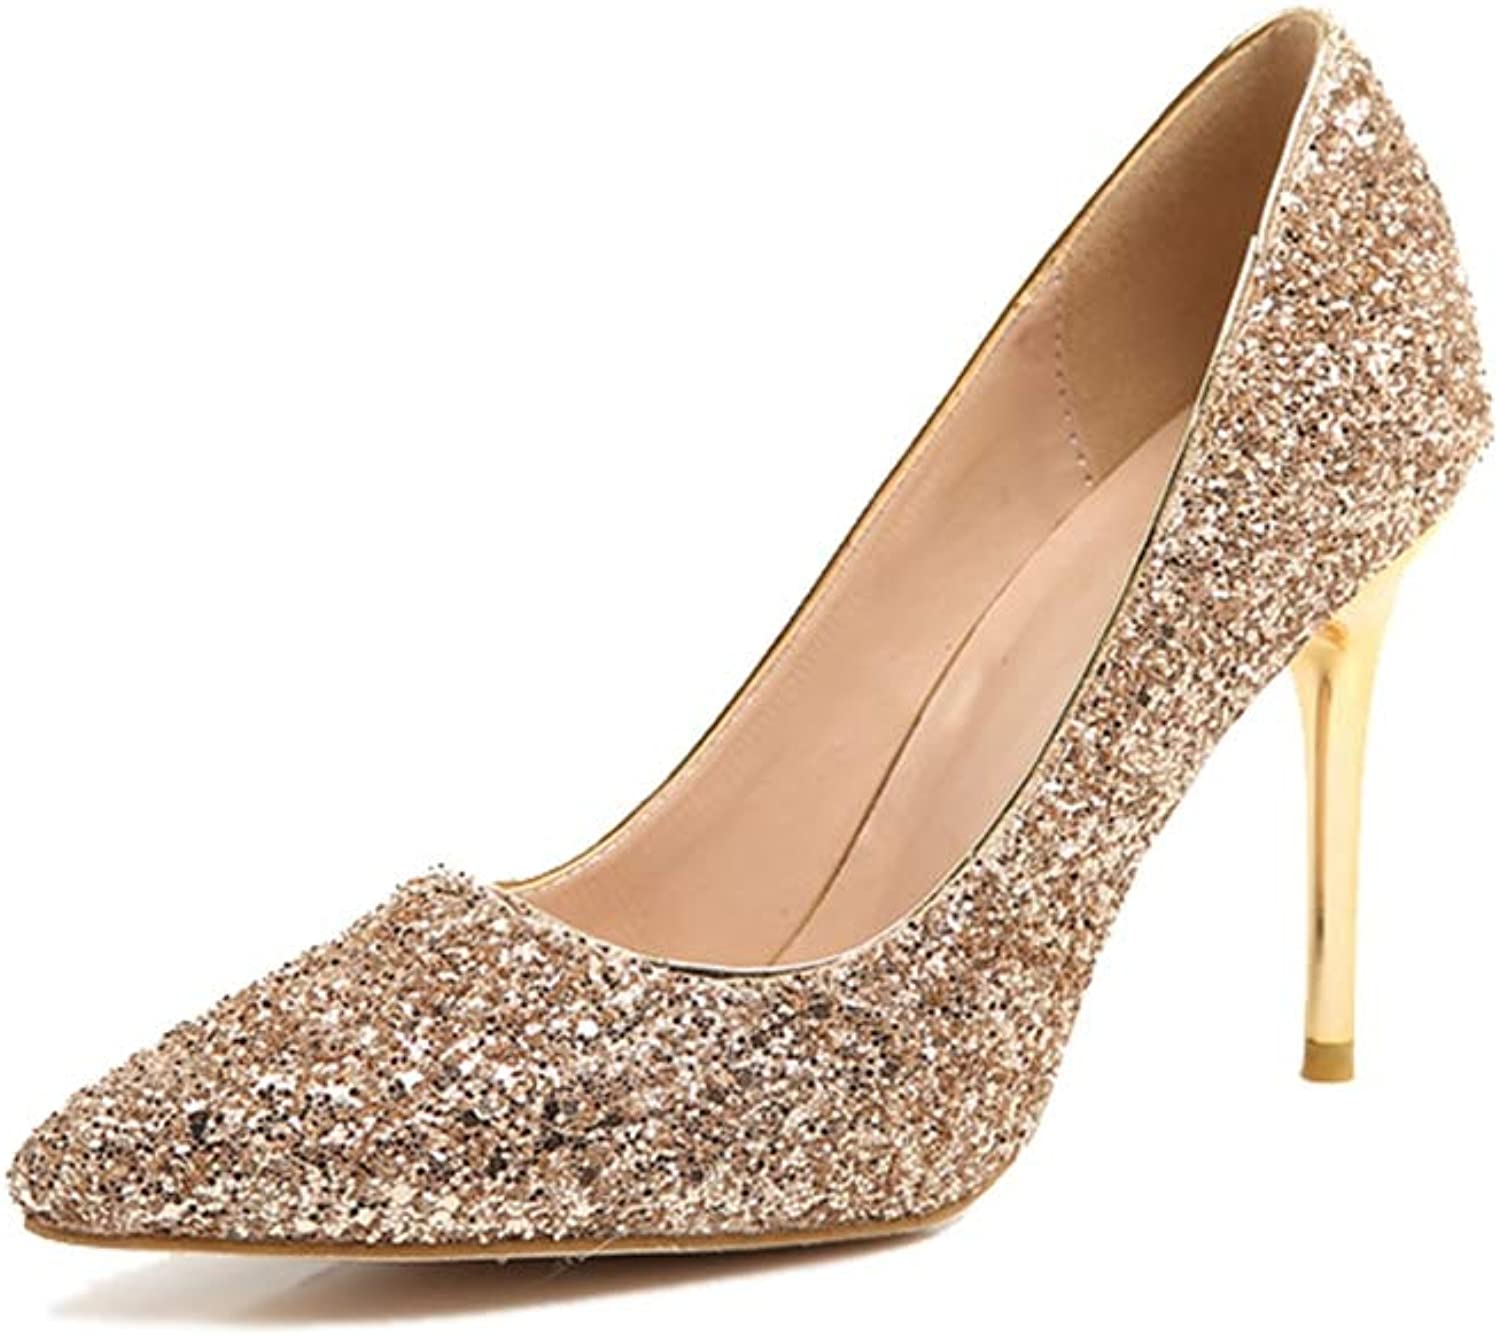 Sam Carle Women's Pump Sequin Thin Heel Pointed-Toe Party Wedding Pumps